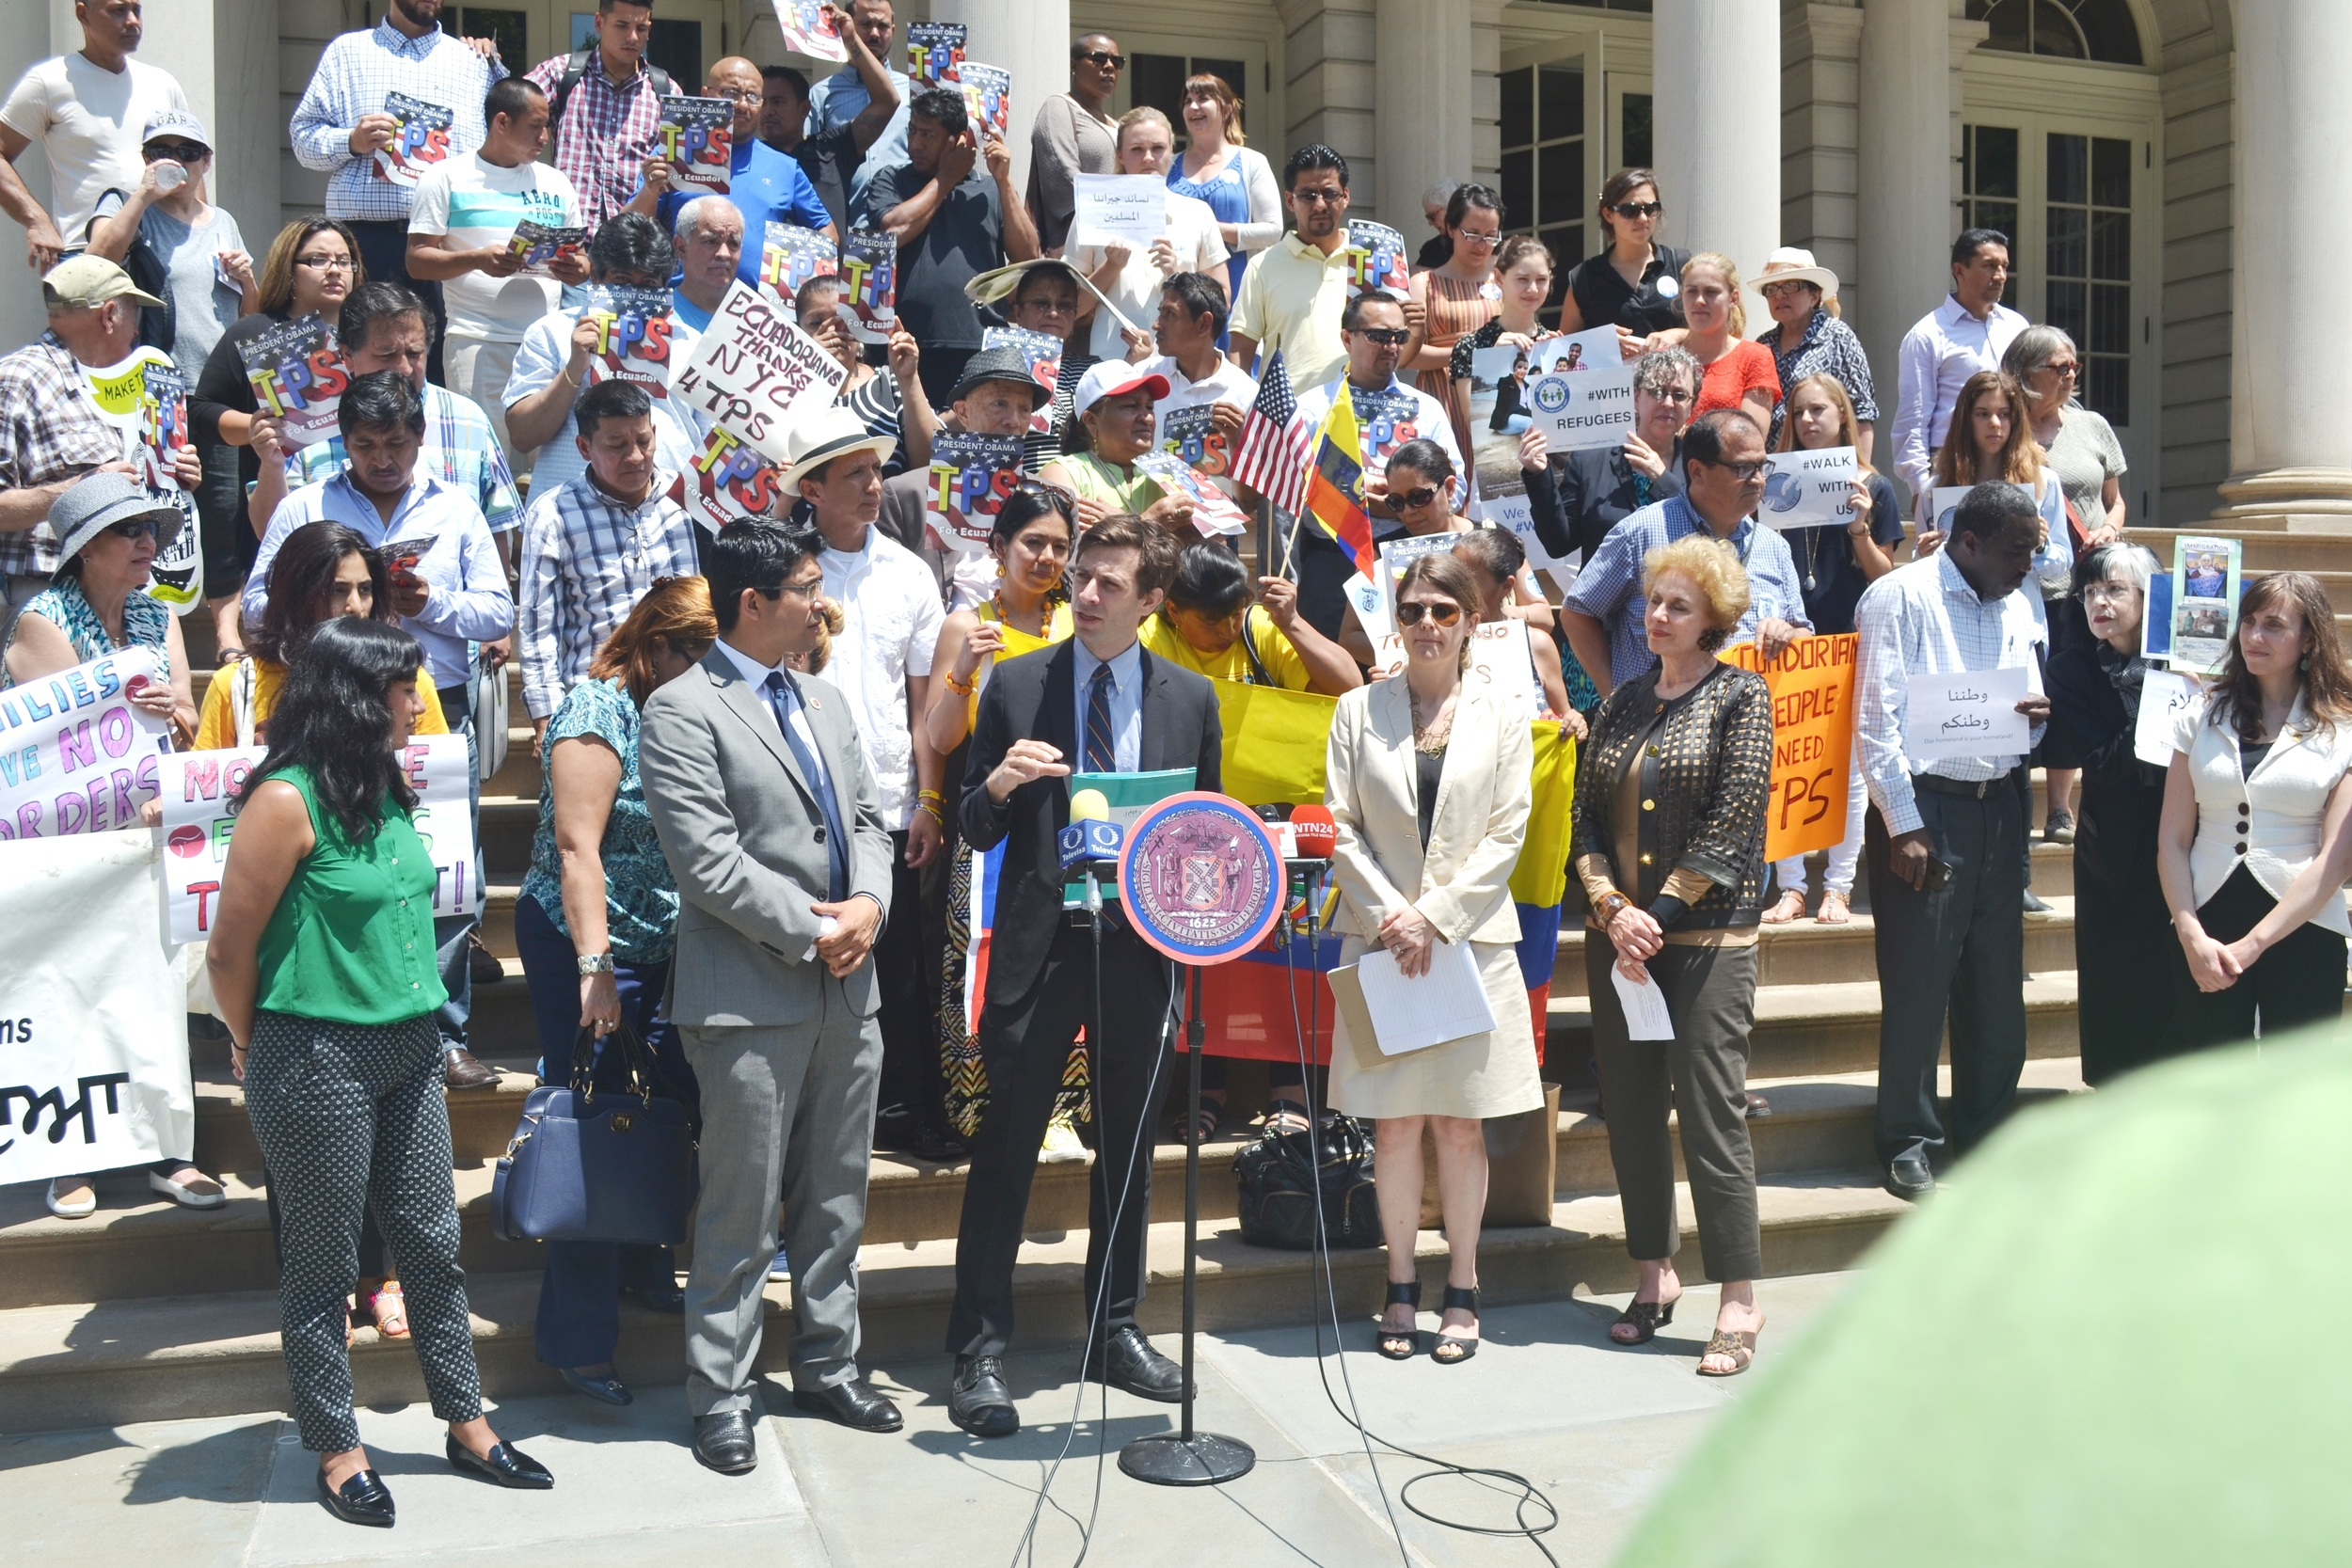 Speaker Mark-Viverito, and Council Members Menchaca, Levin, and Ferreras-Copeland called for federal action so support refugees